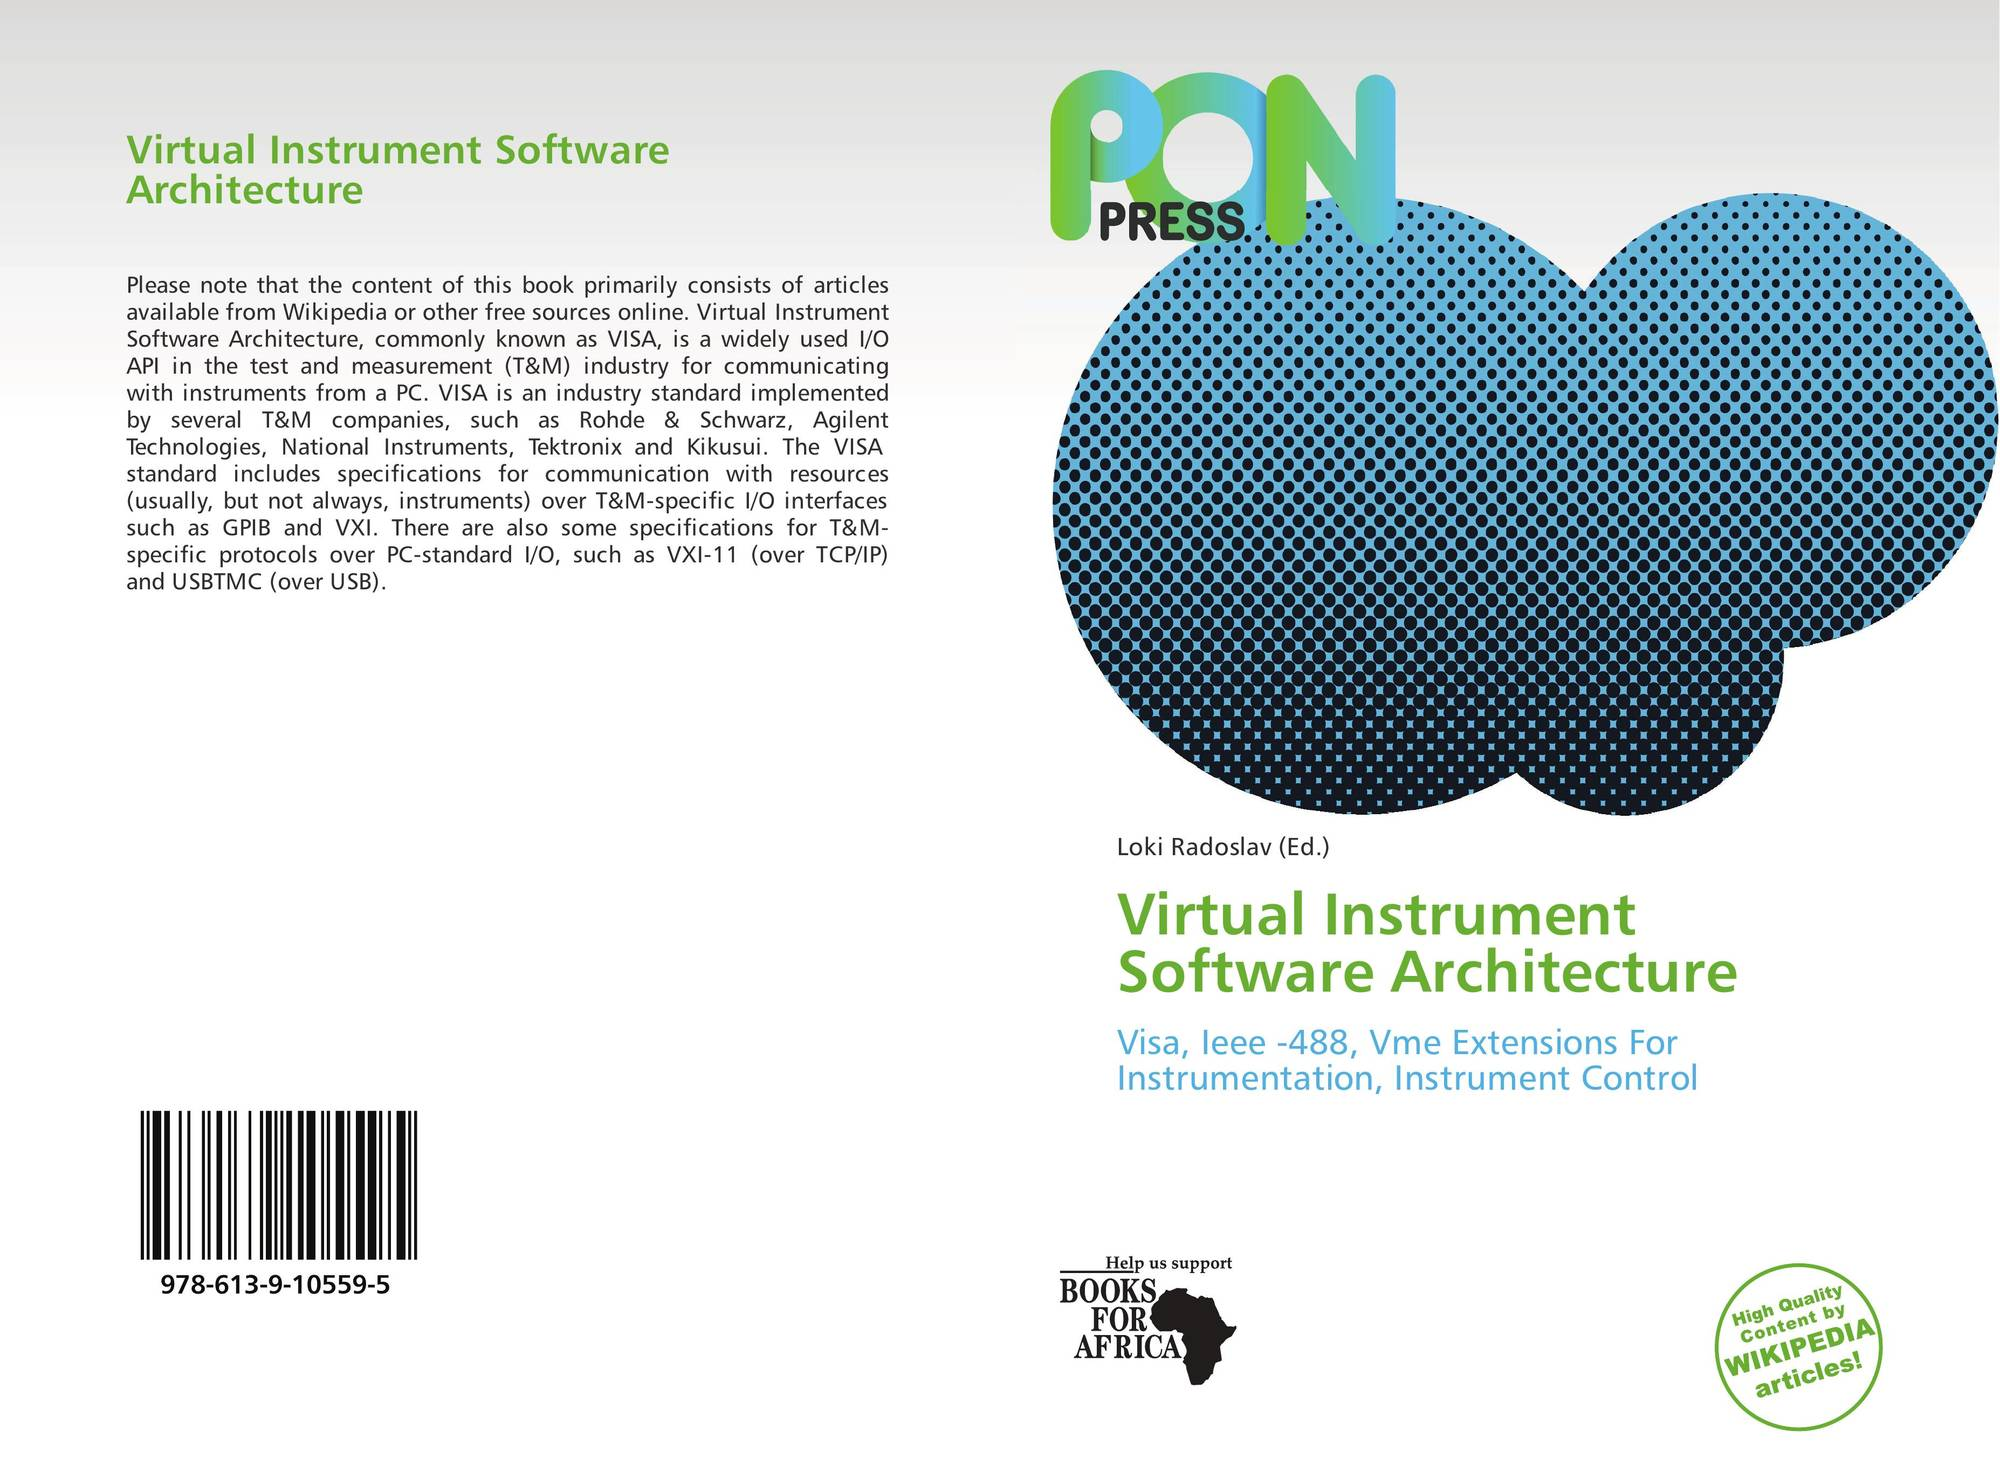 Virtual Instrument Software Architecture, 978-613-9-10559-5